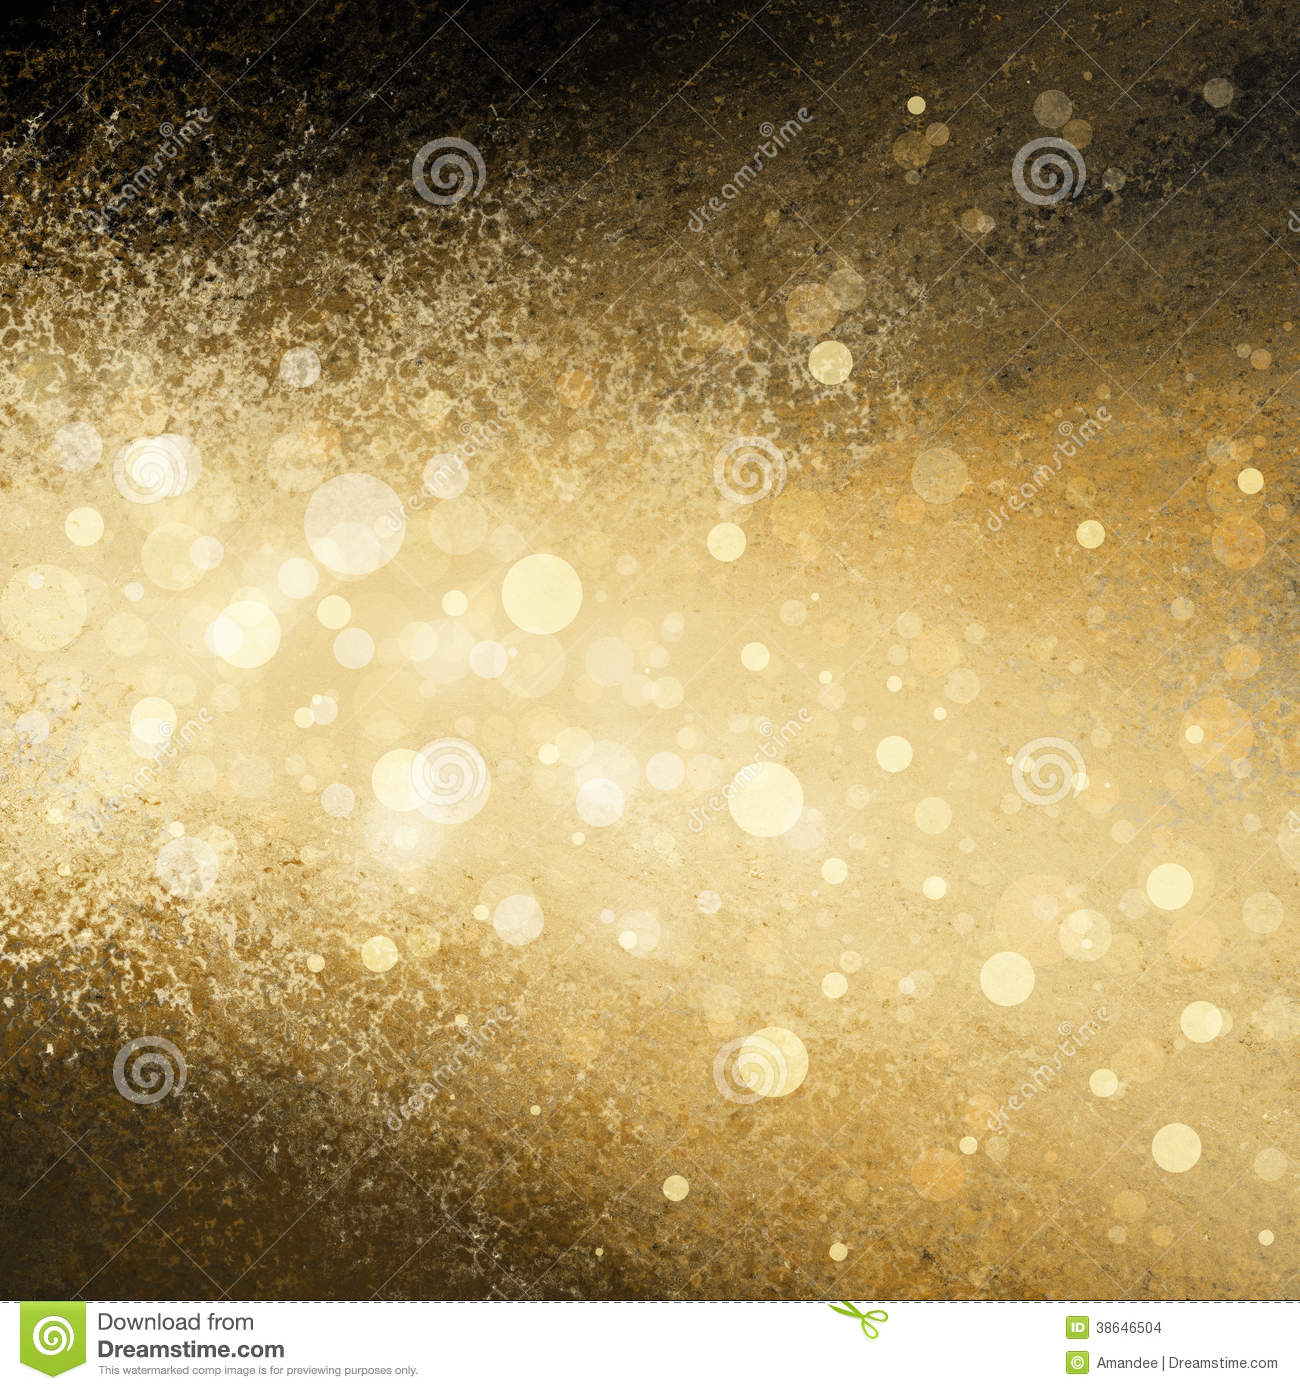 Gold white Christmas lights blurred background